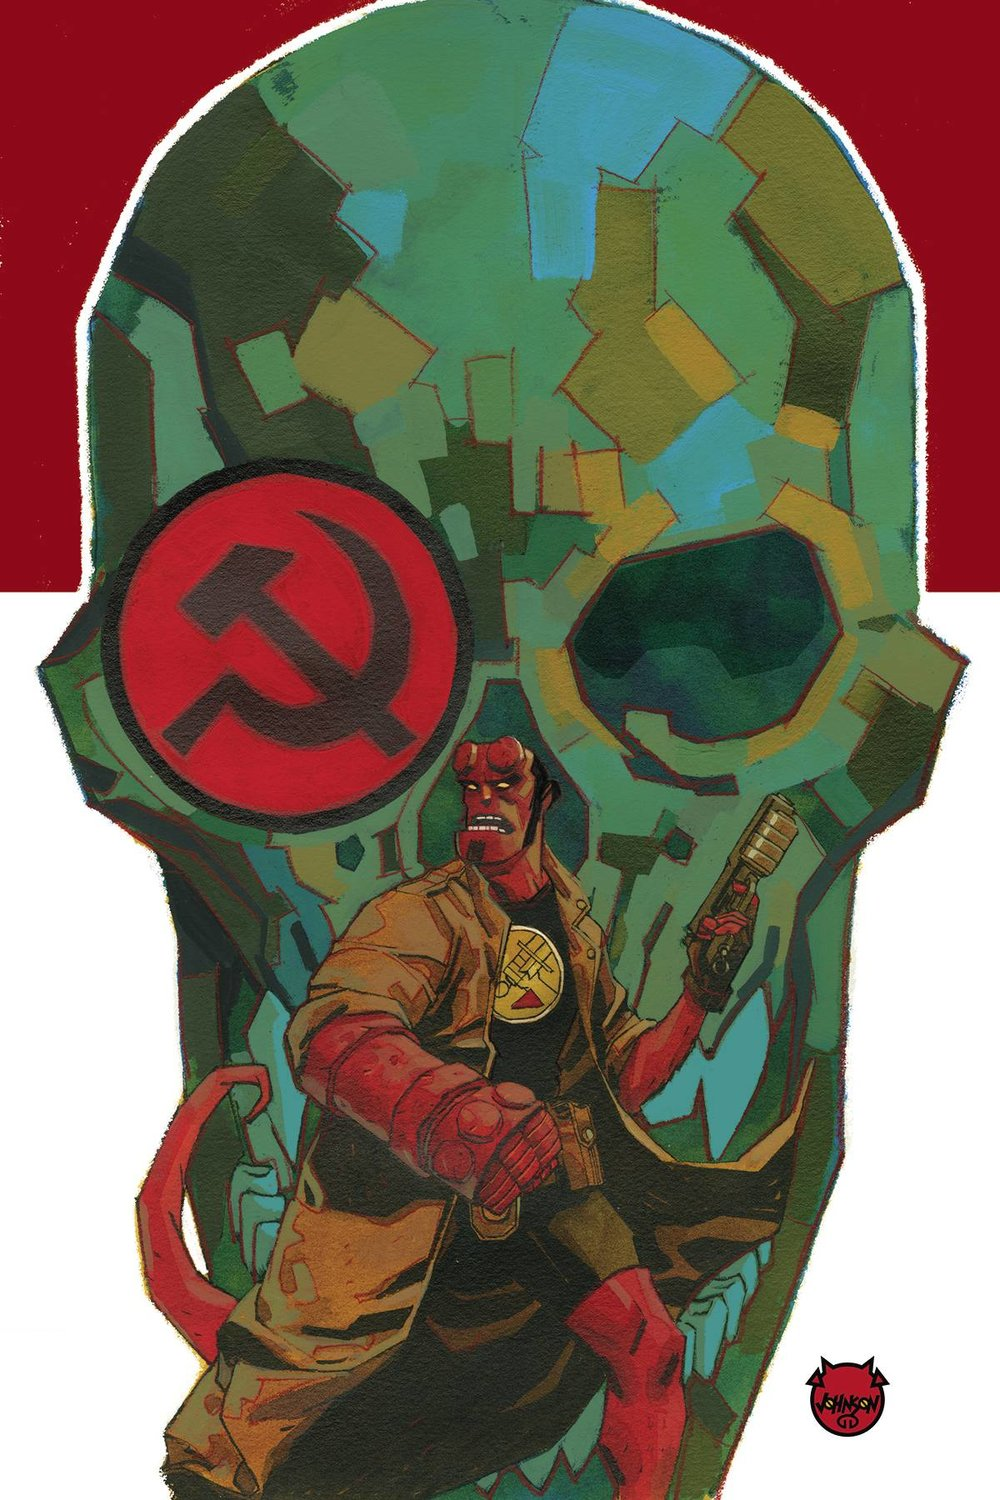 HELLBOY AND BPRD 1956 1 of 5.jpg